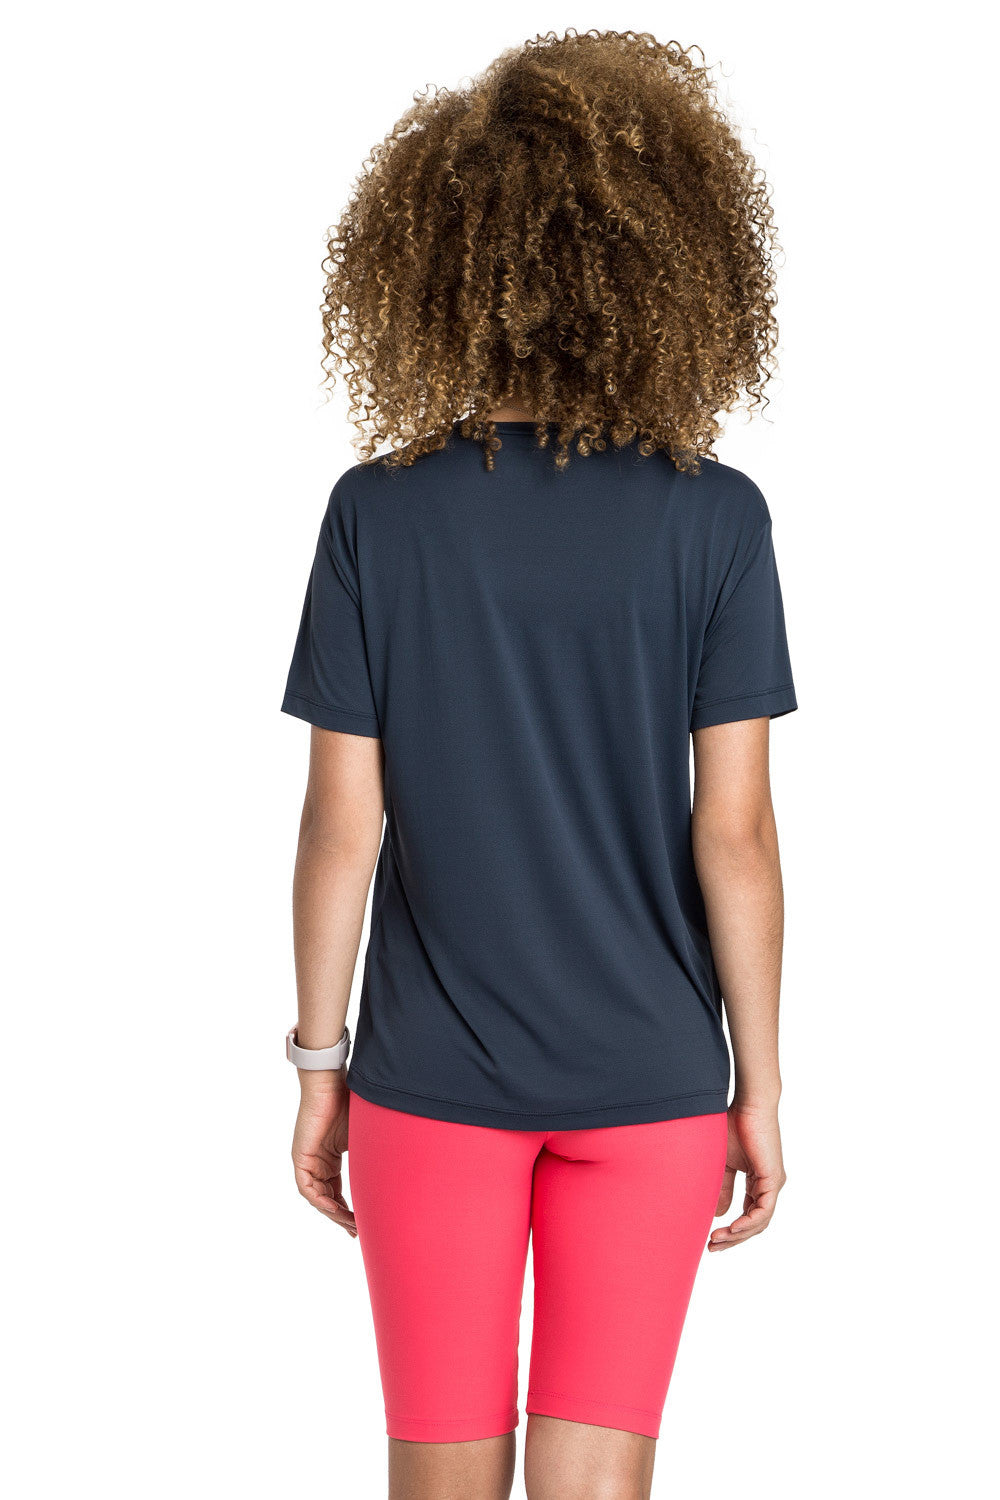 Unissex Confy Basic Tee 2